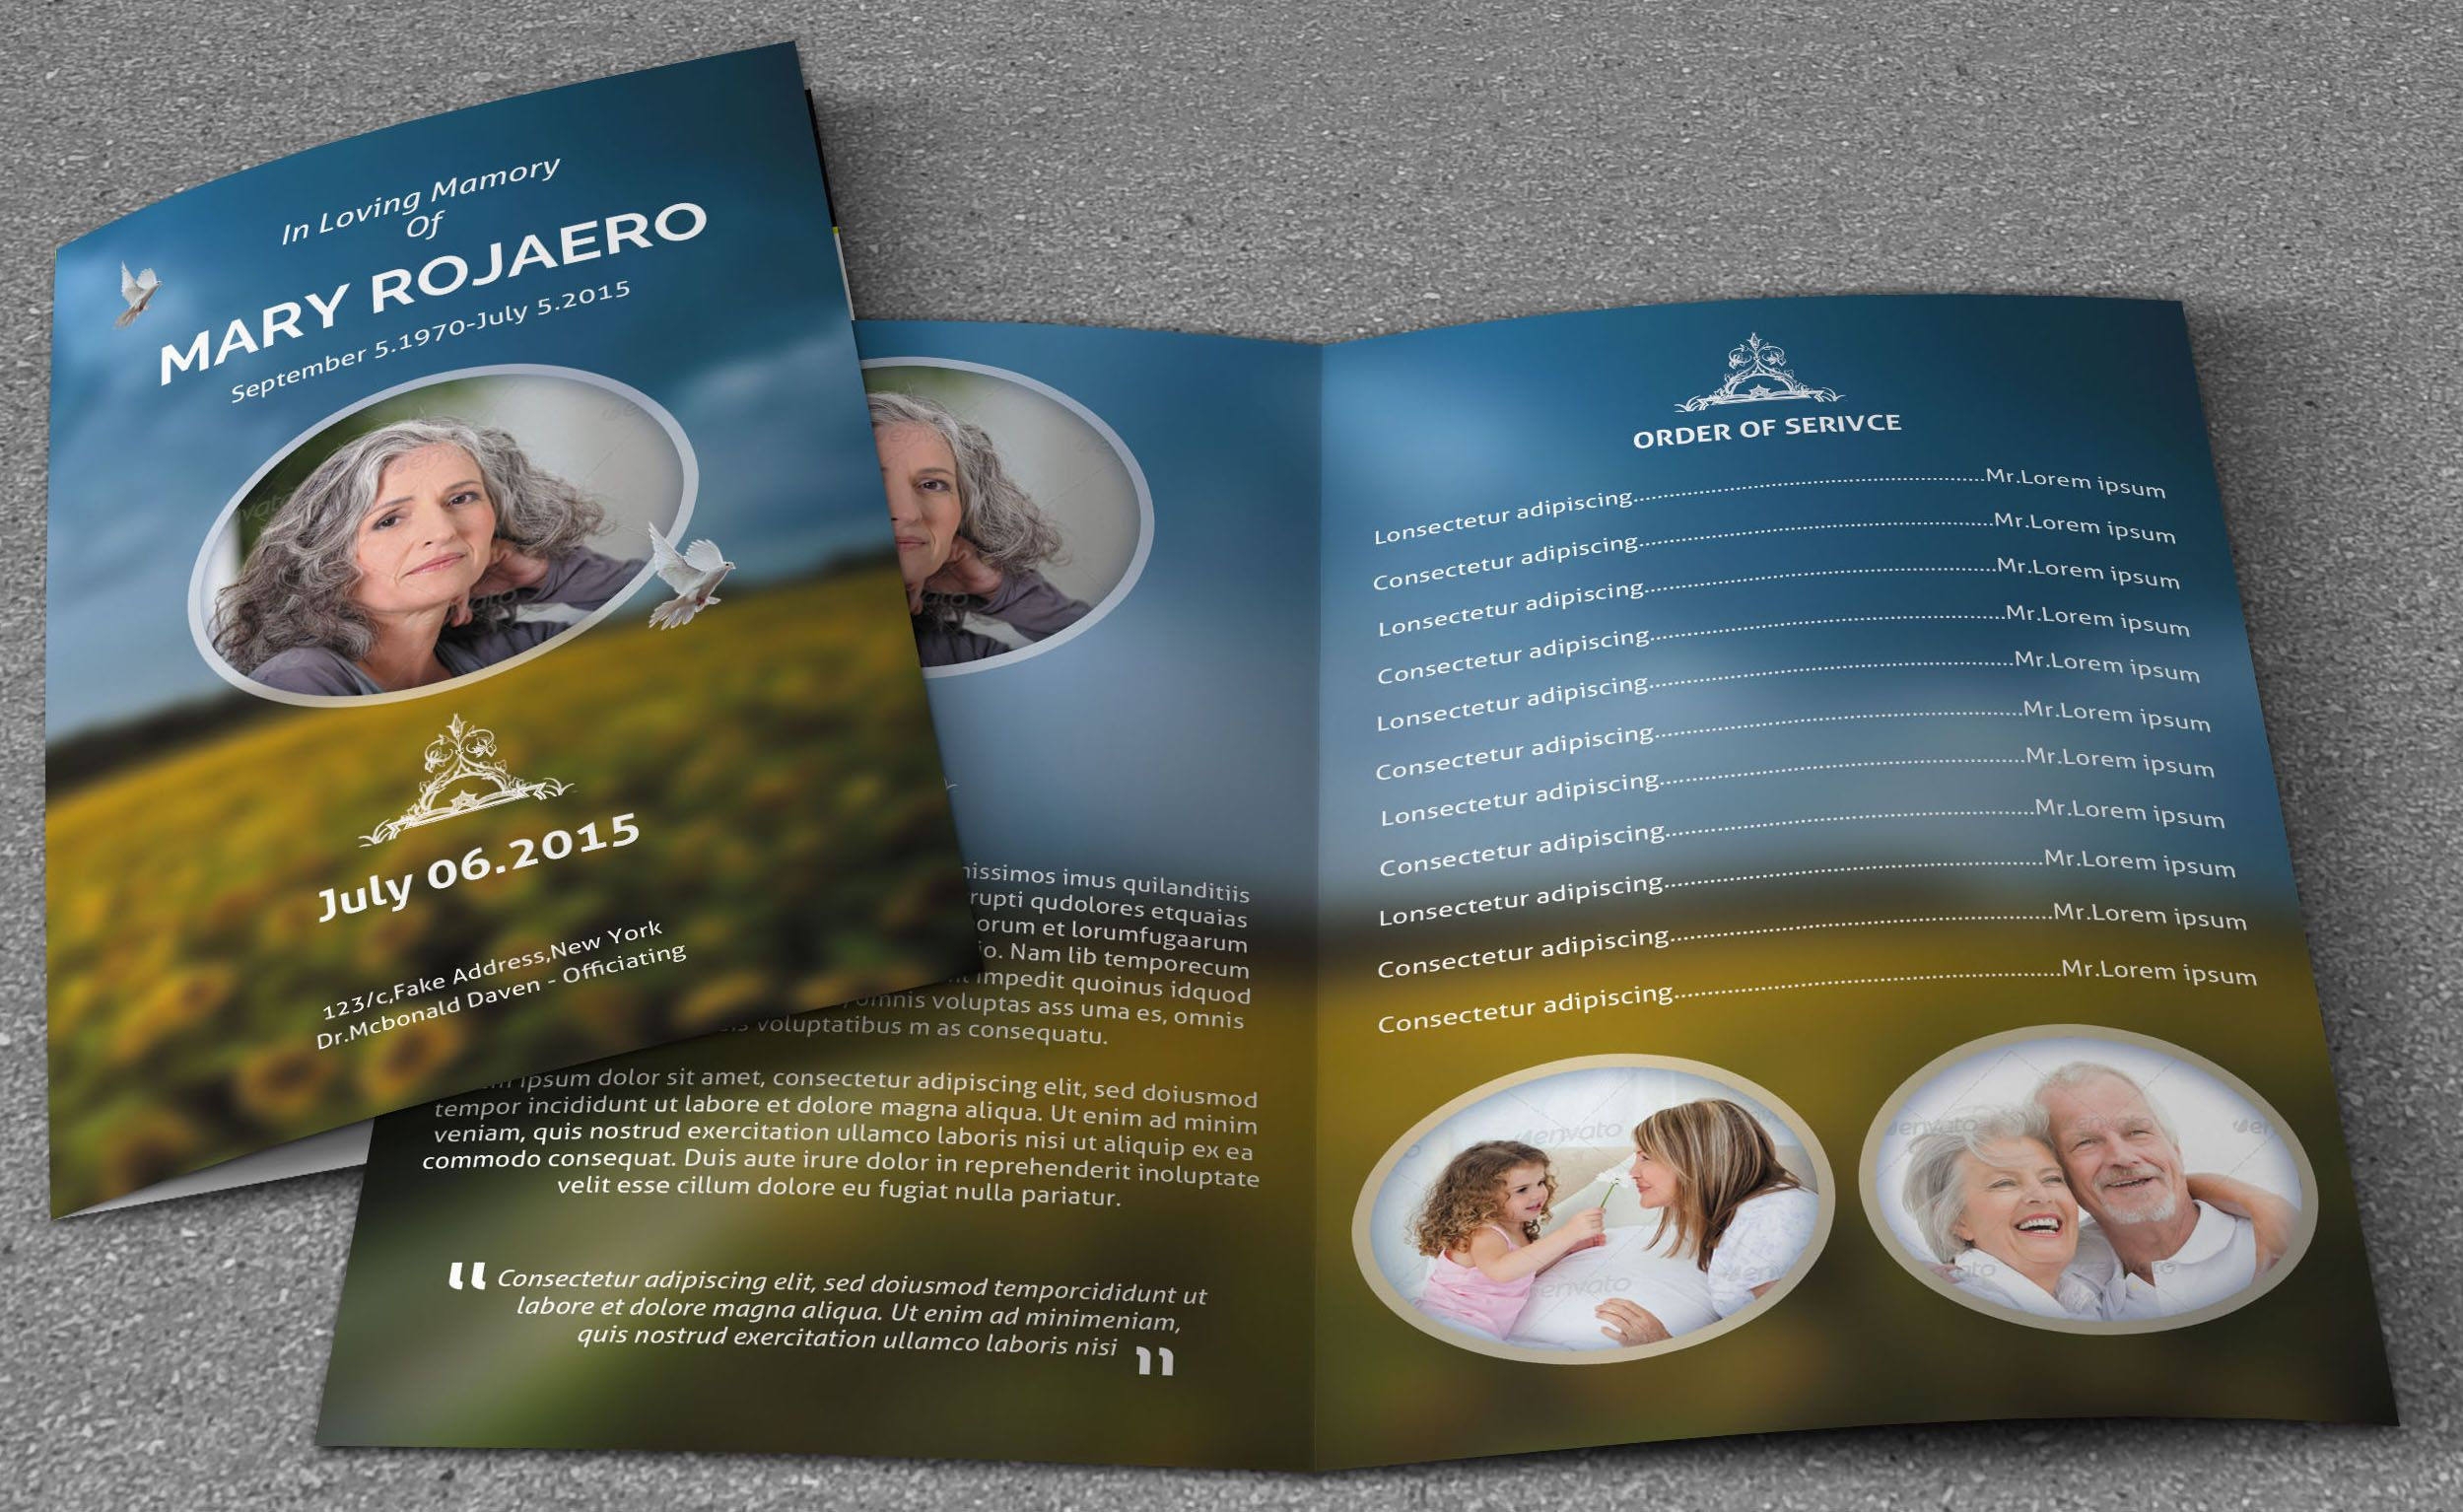 Elegance Funeral ProgramV  Funeral Programming And Template